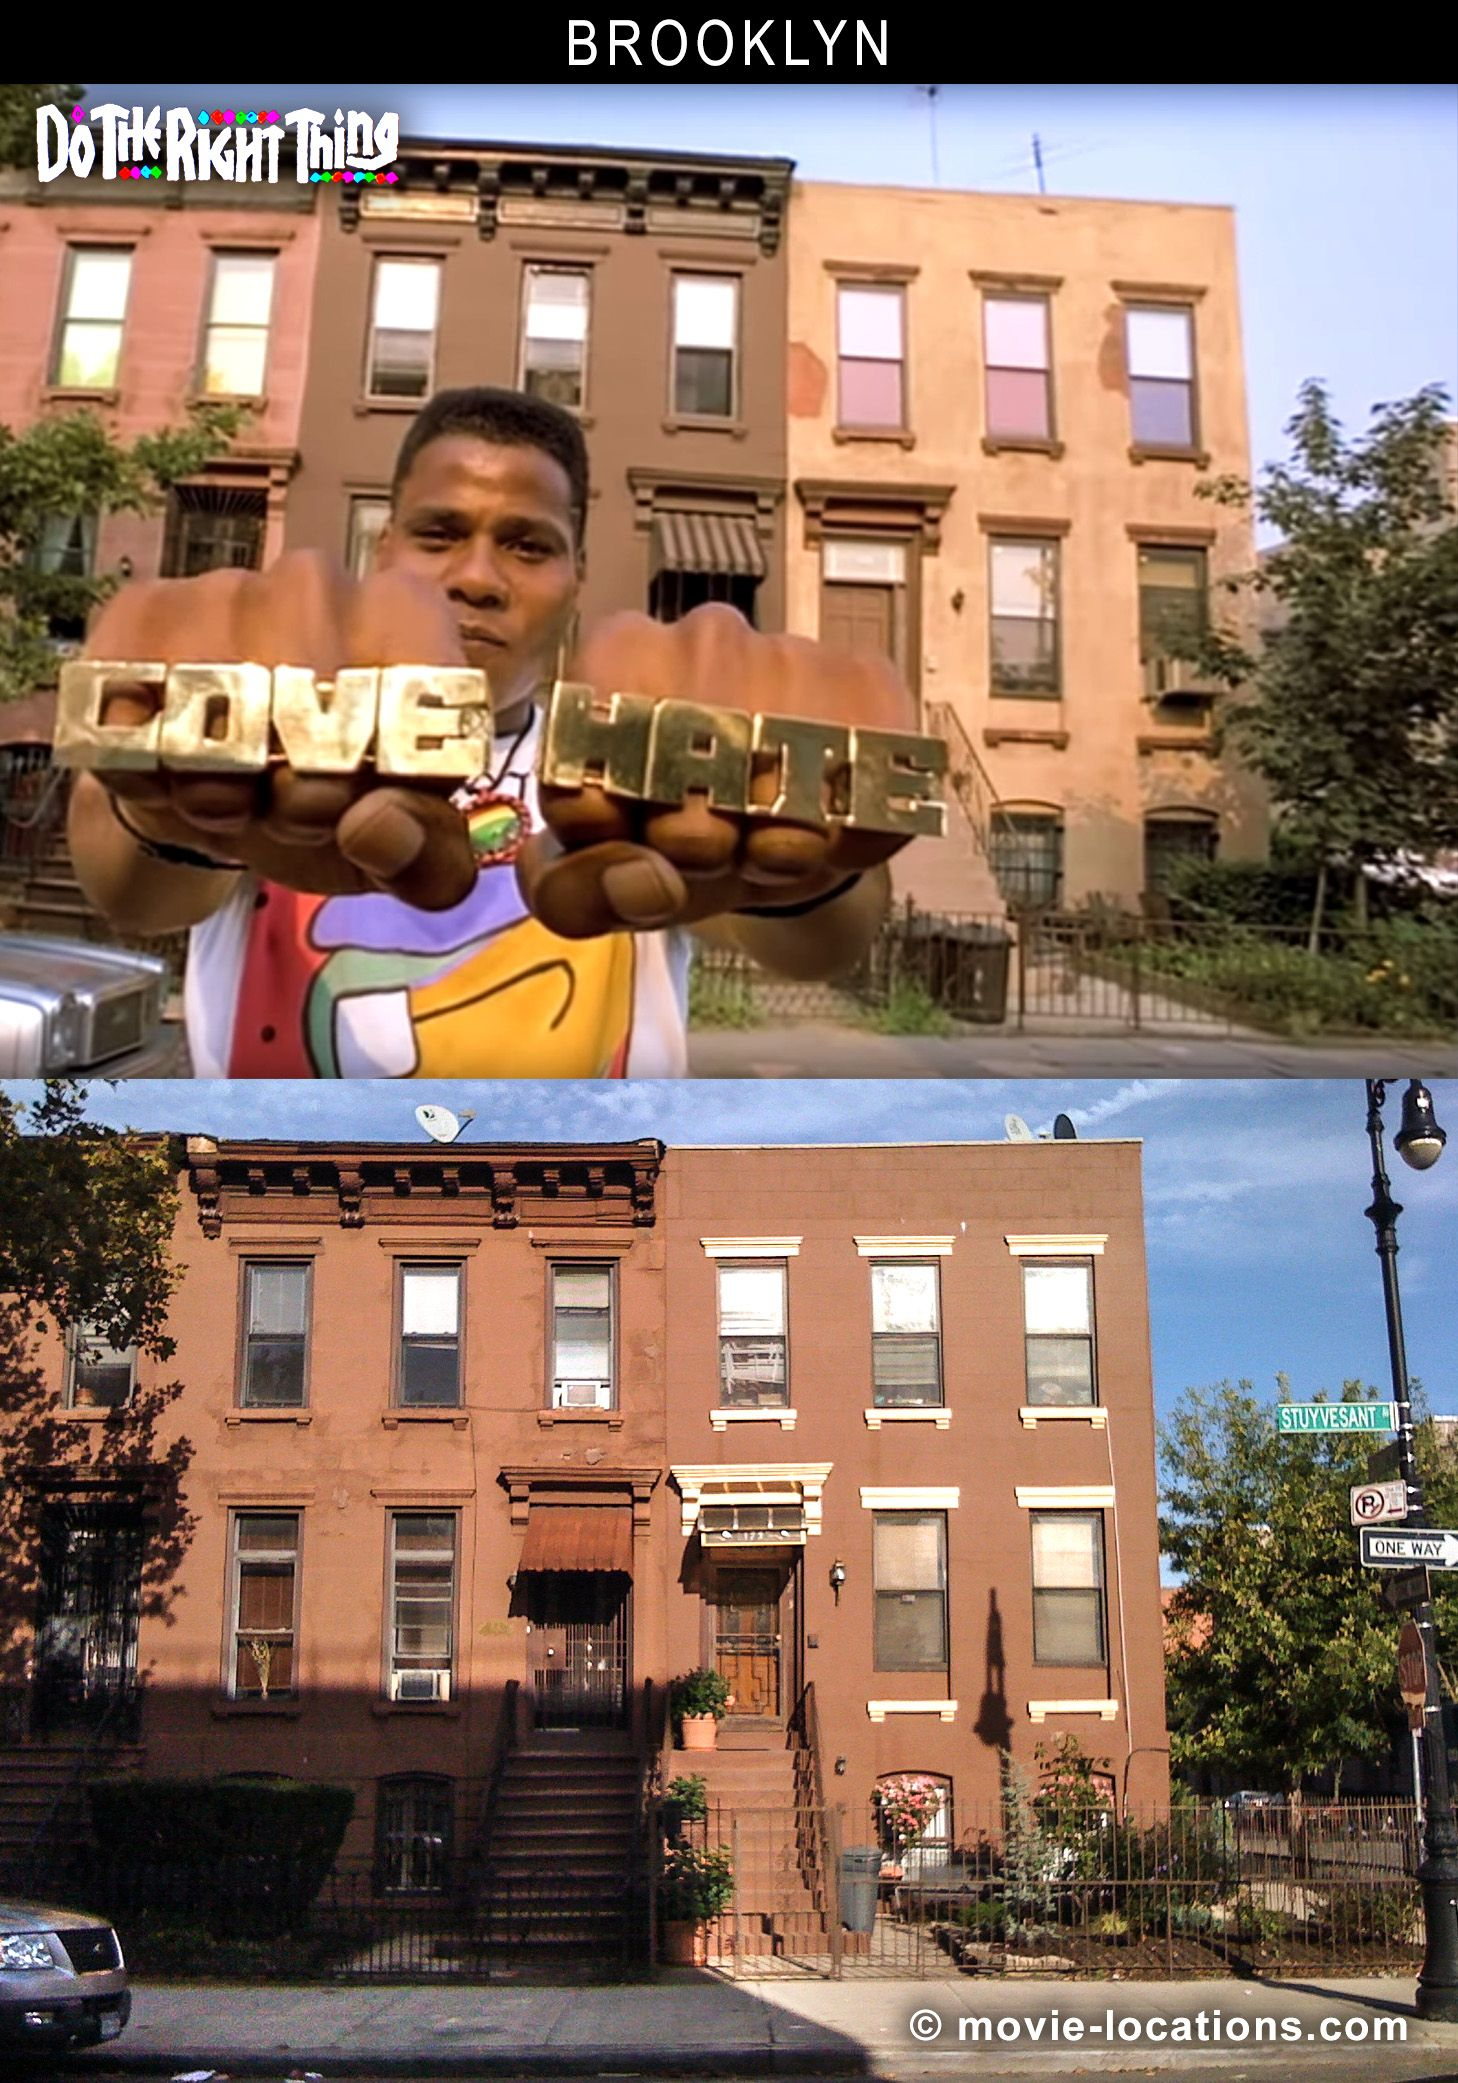 Film Locations for Do The Right Thing (1989), in Brooklyn